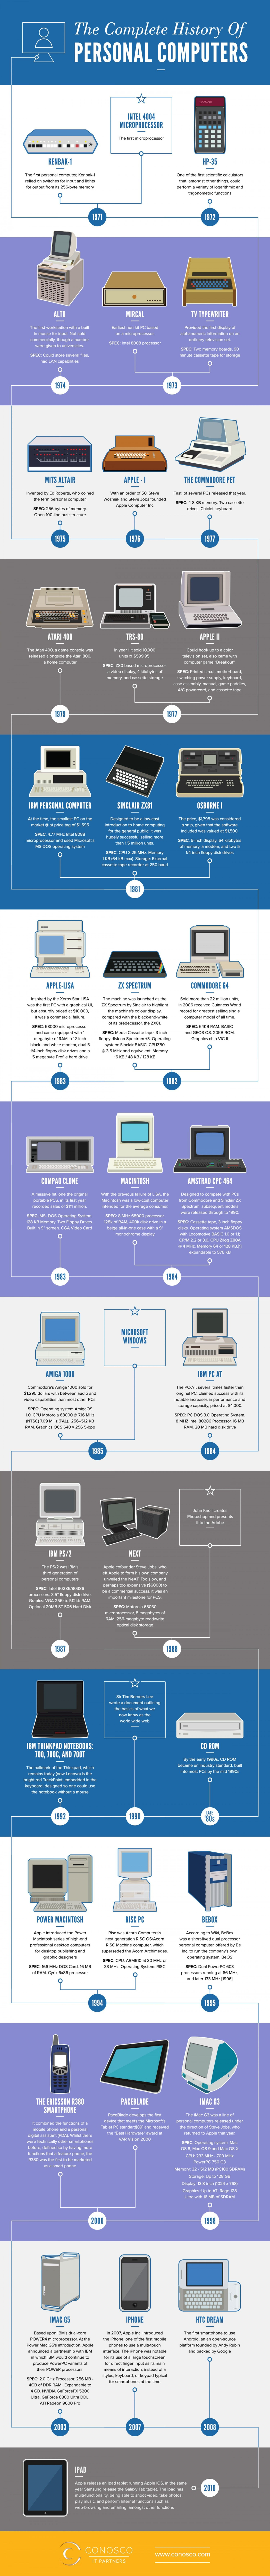 the complete history of personal computers infographic pinteres the complete history of personal computers infographic more